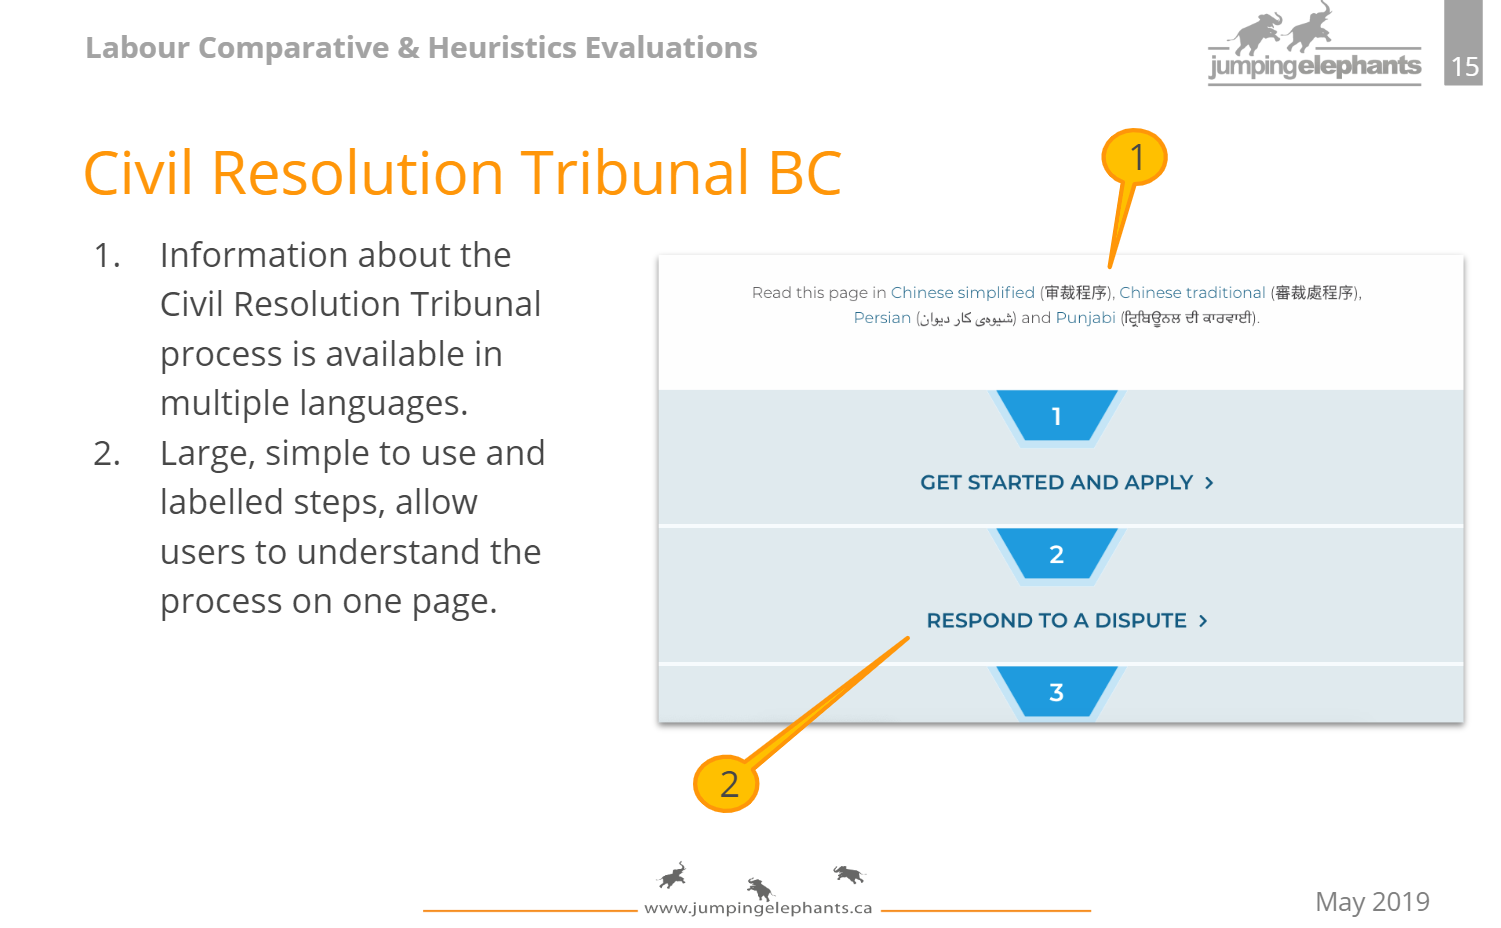 Preview of a Microsoft Power Point slide. On the slide, there is a screenshot of Civil Resolution Tribunal BC's website. There are arrows and text pointing out the strengths of the design.